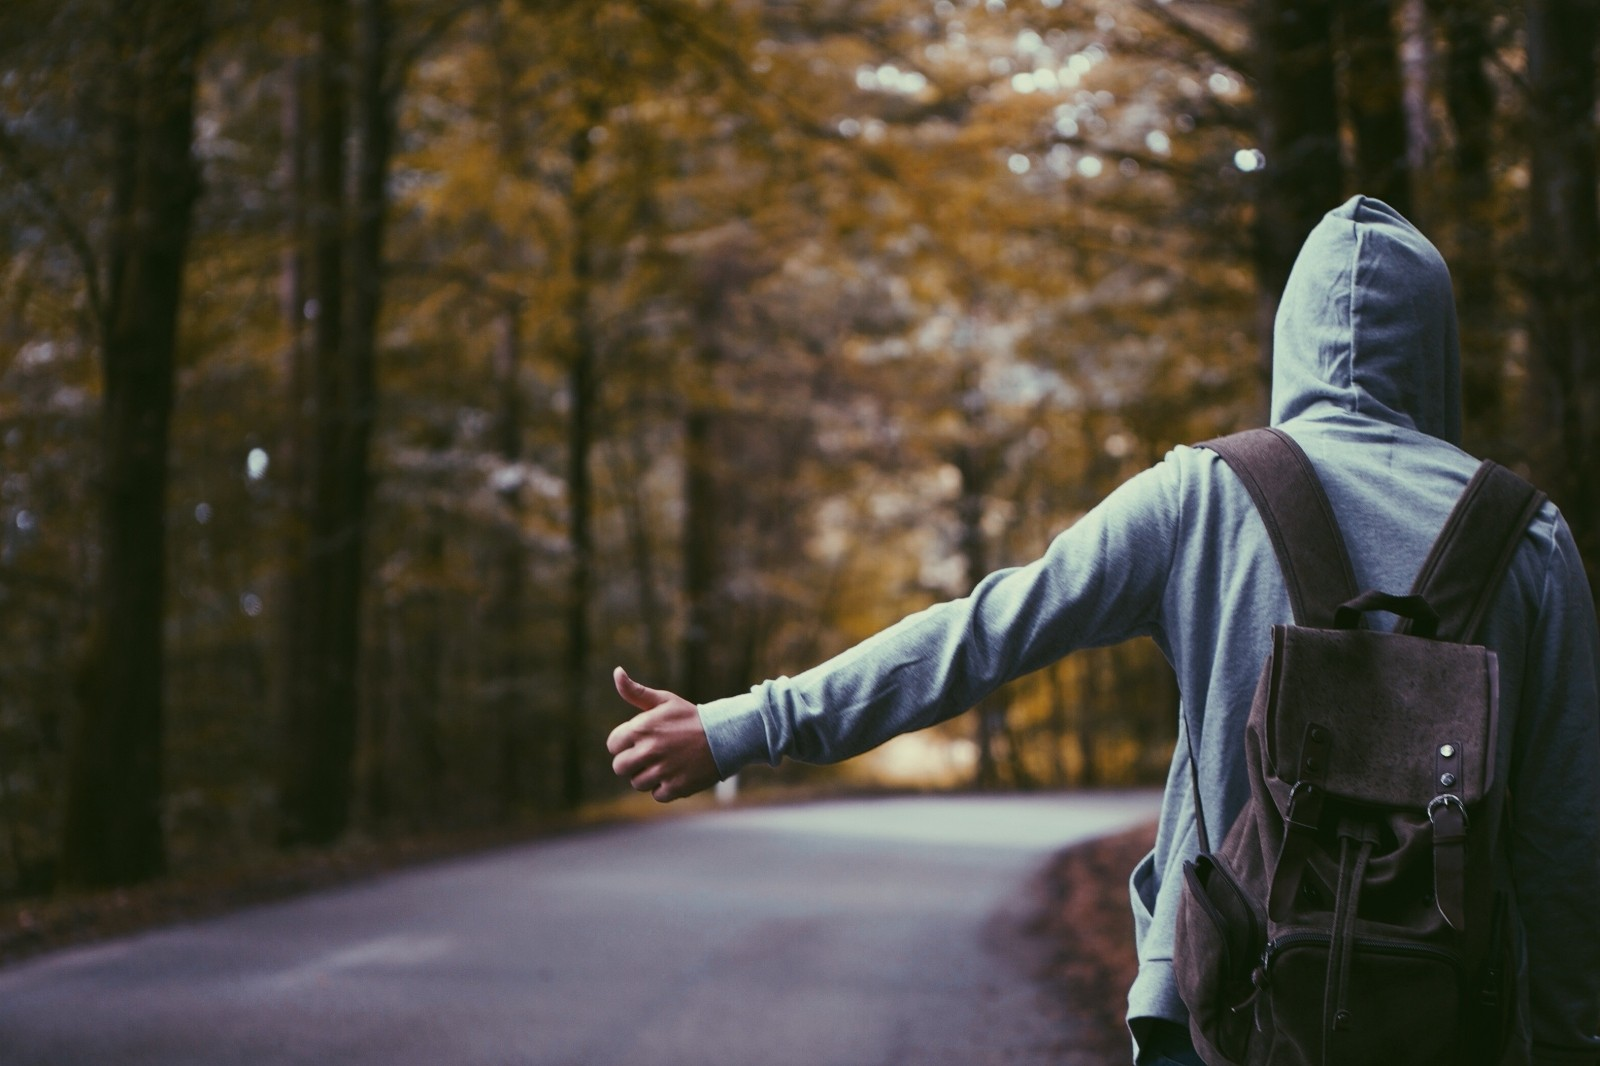 hitch-hiker-wearing-hood-on-road-in-forest